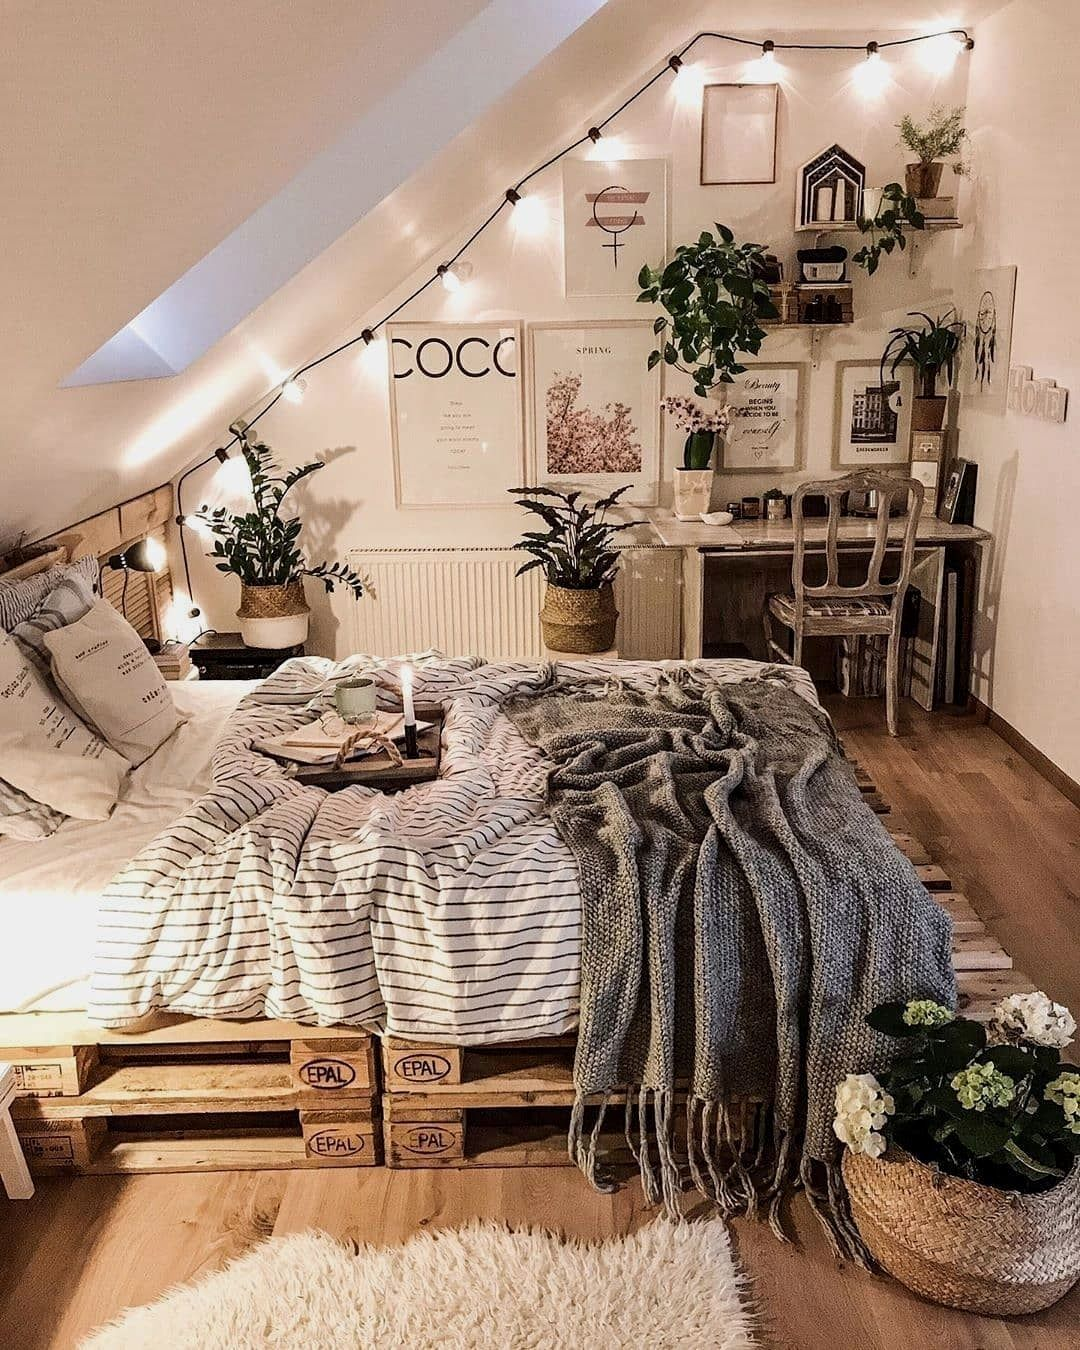 Creative Bedroom Decorating Ideas In 2020 Apartment Decor Small Apartment Decorating Bedroom Decor